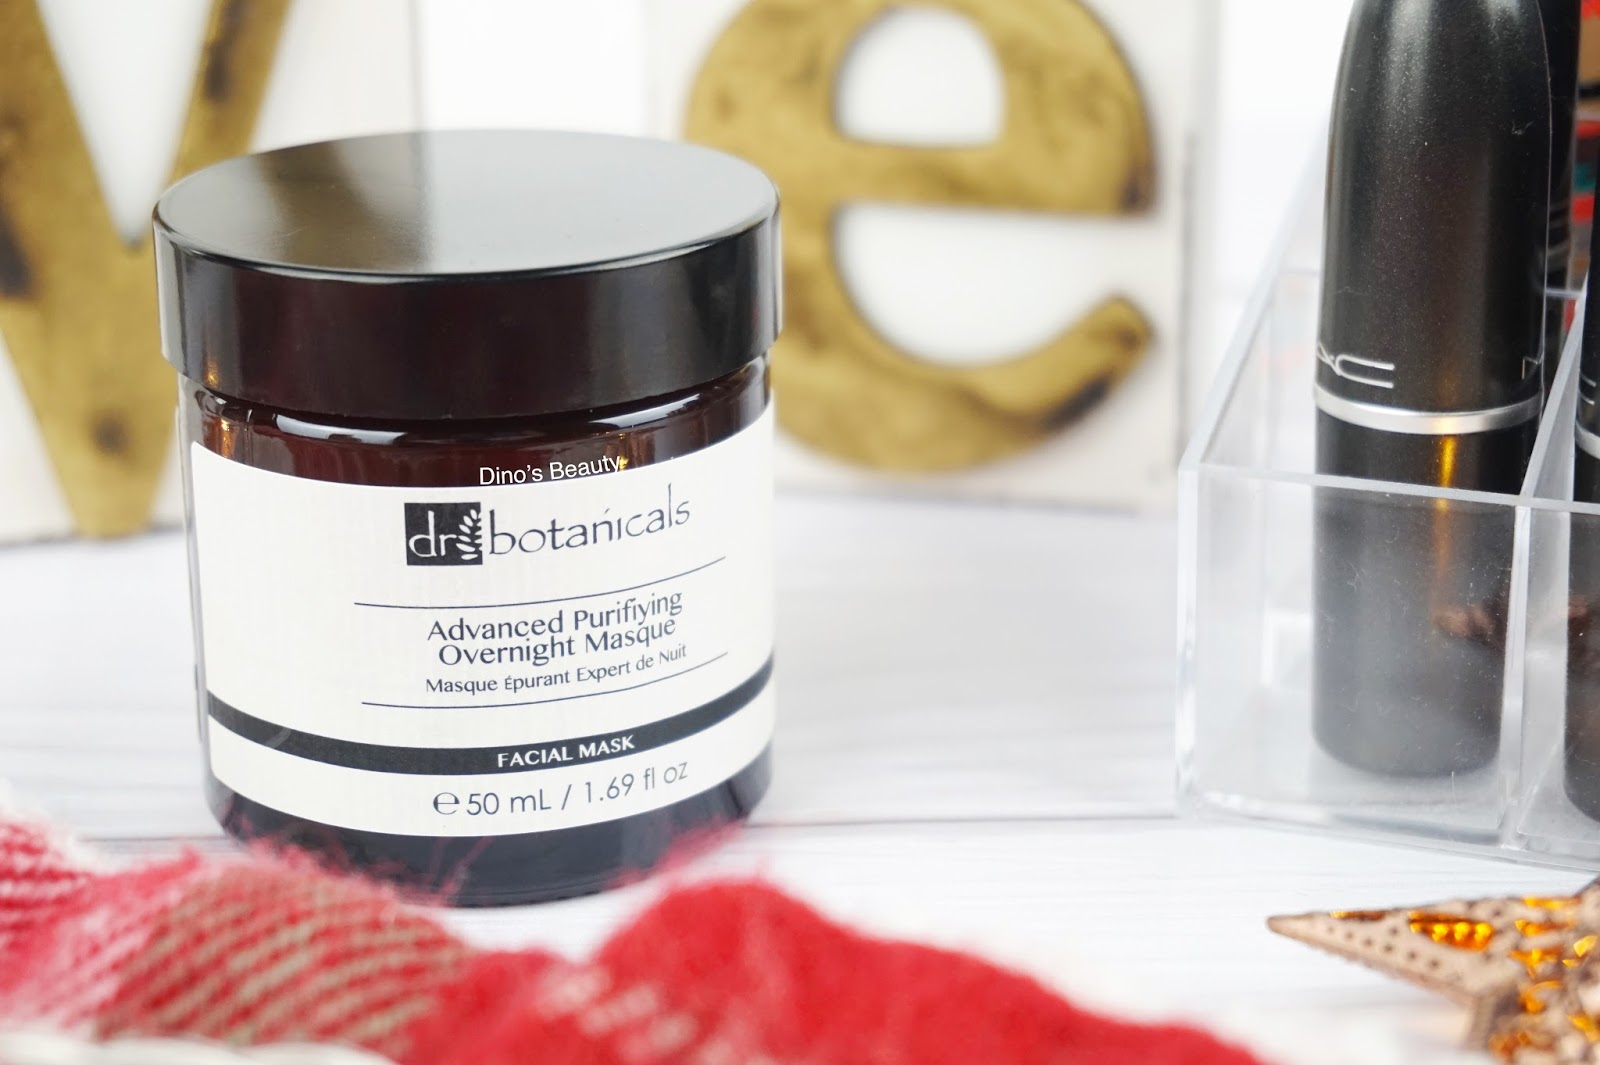 Overnight Masque, Face Mask, Dr Botanicals, Dr Botanicals Advanced Purifying Overnight Masque, Masque, Hydrating, bbloggers, beauty, beauty bloggers, beauty review, Face Cream, Skincare, Skincare Review, Review, Facial Skincare